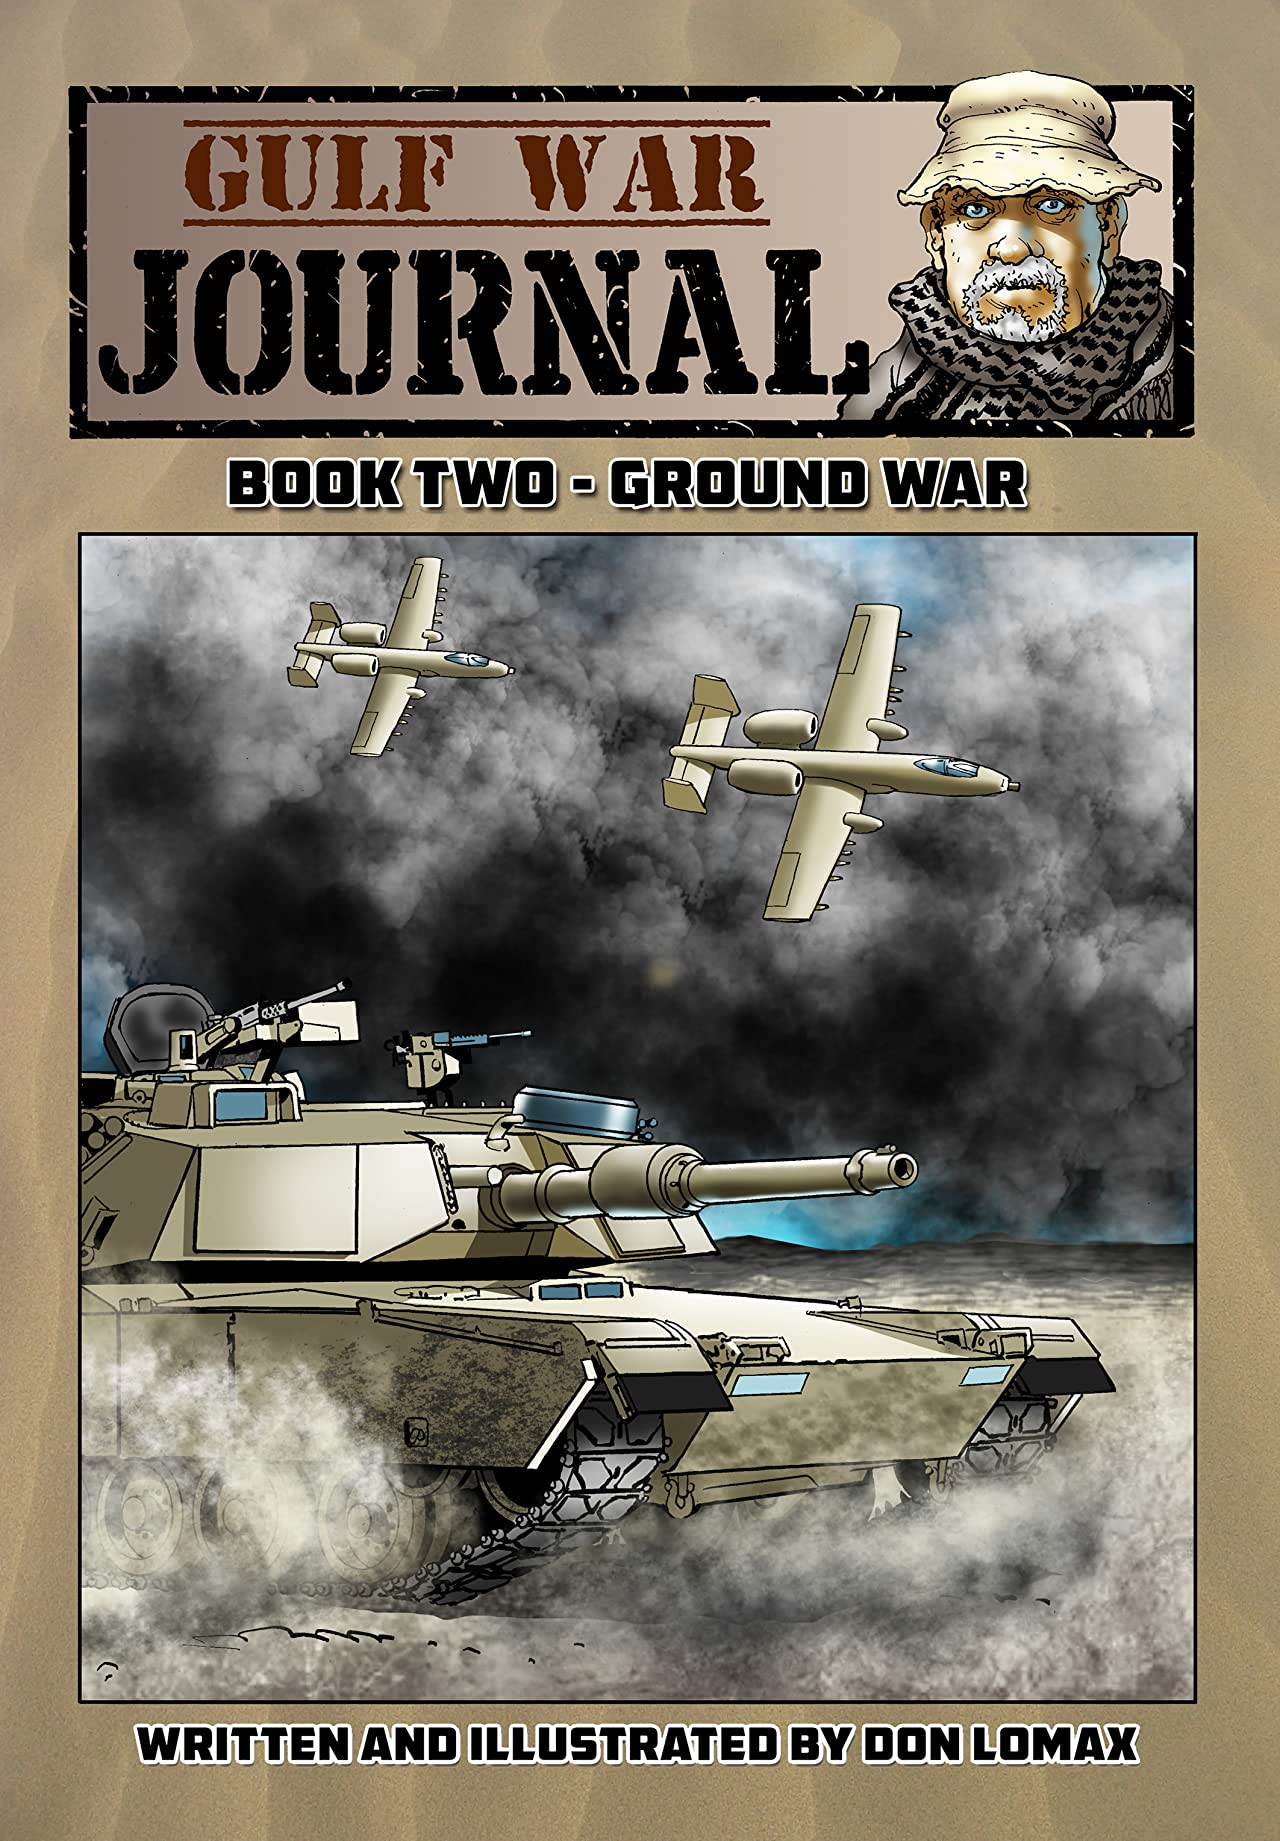 Gulf War Journal, Book One Vol. 2